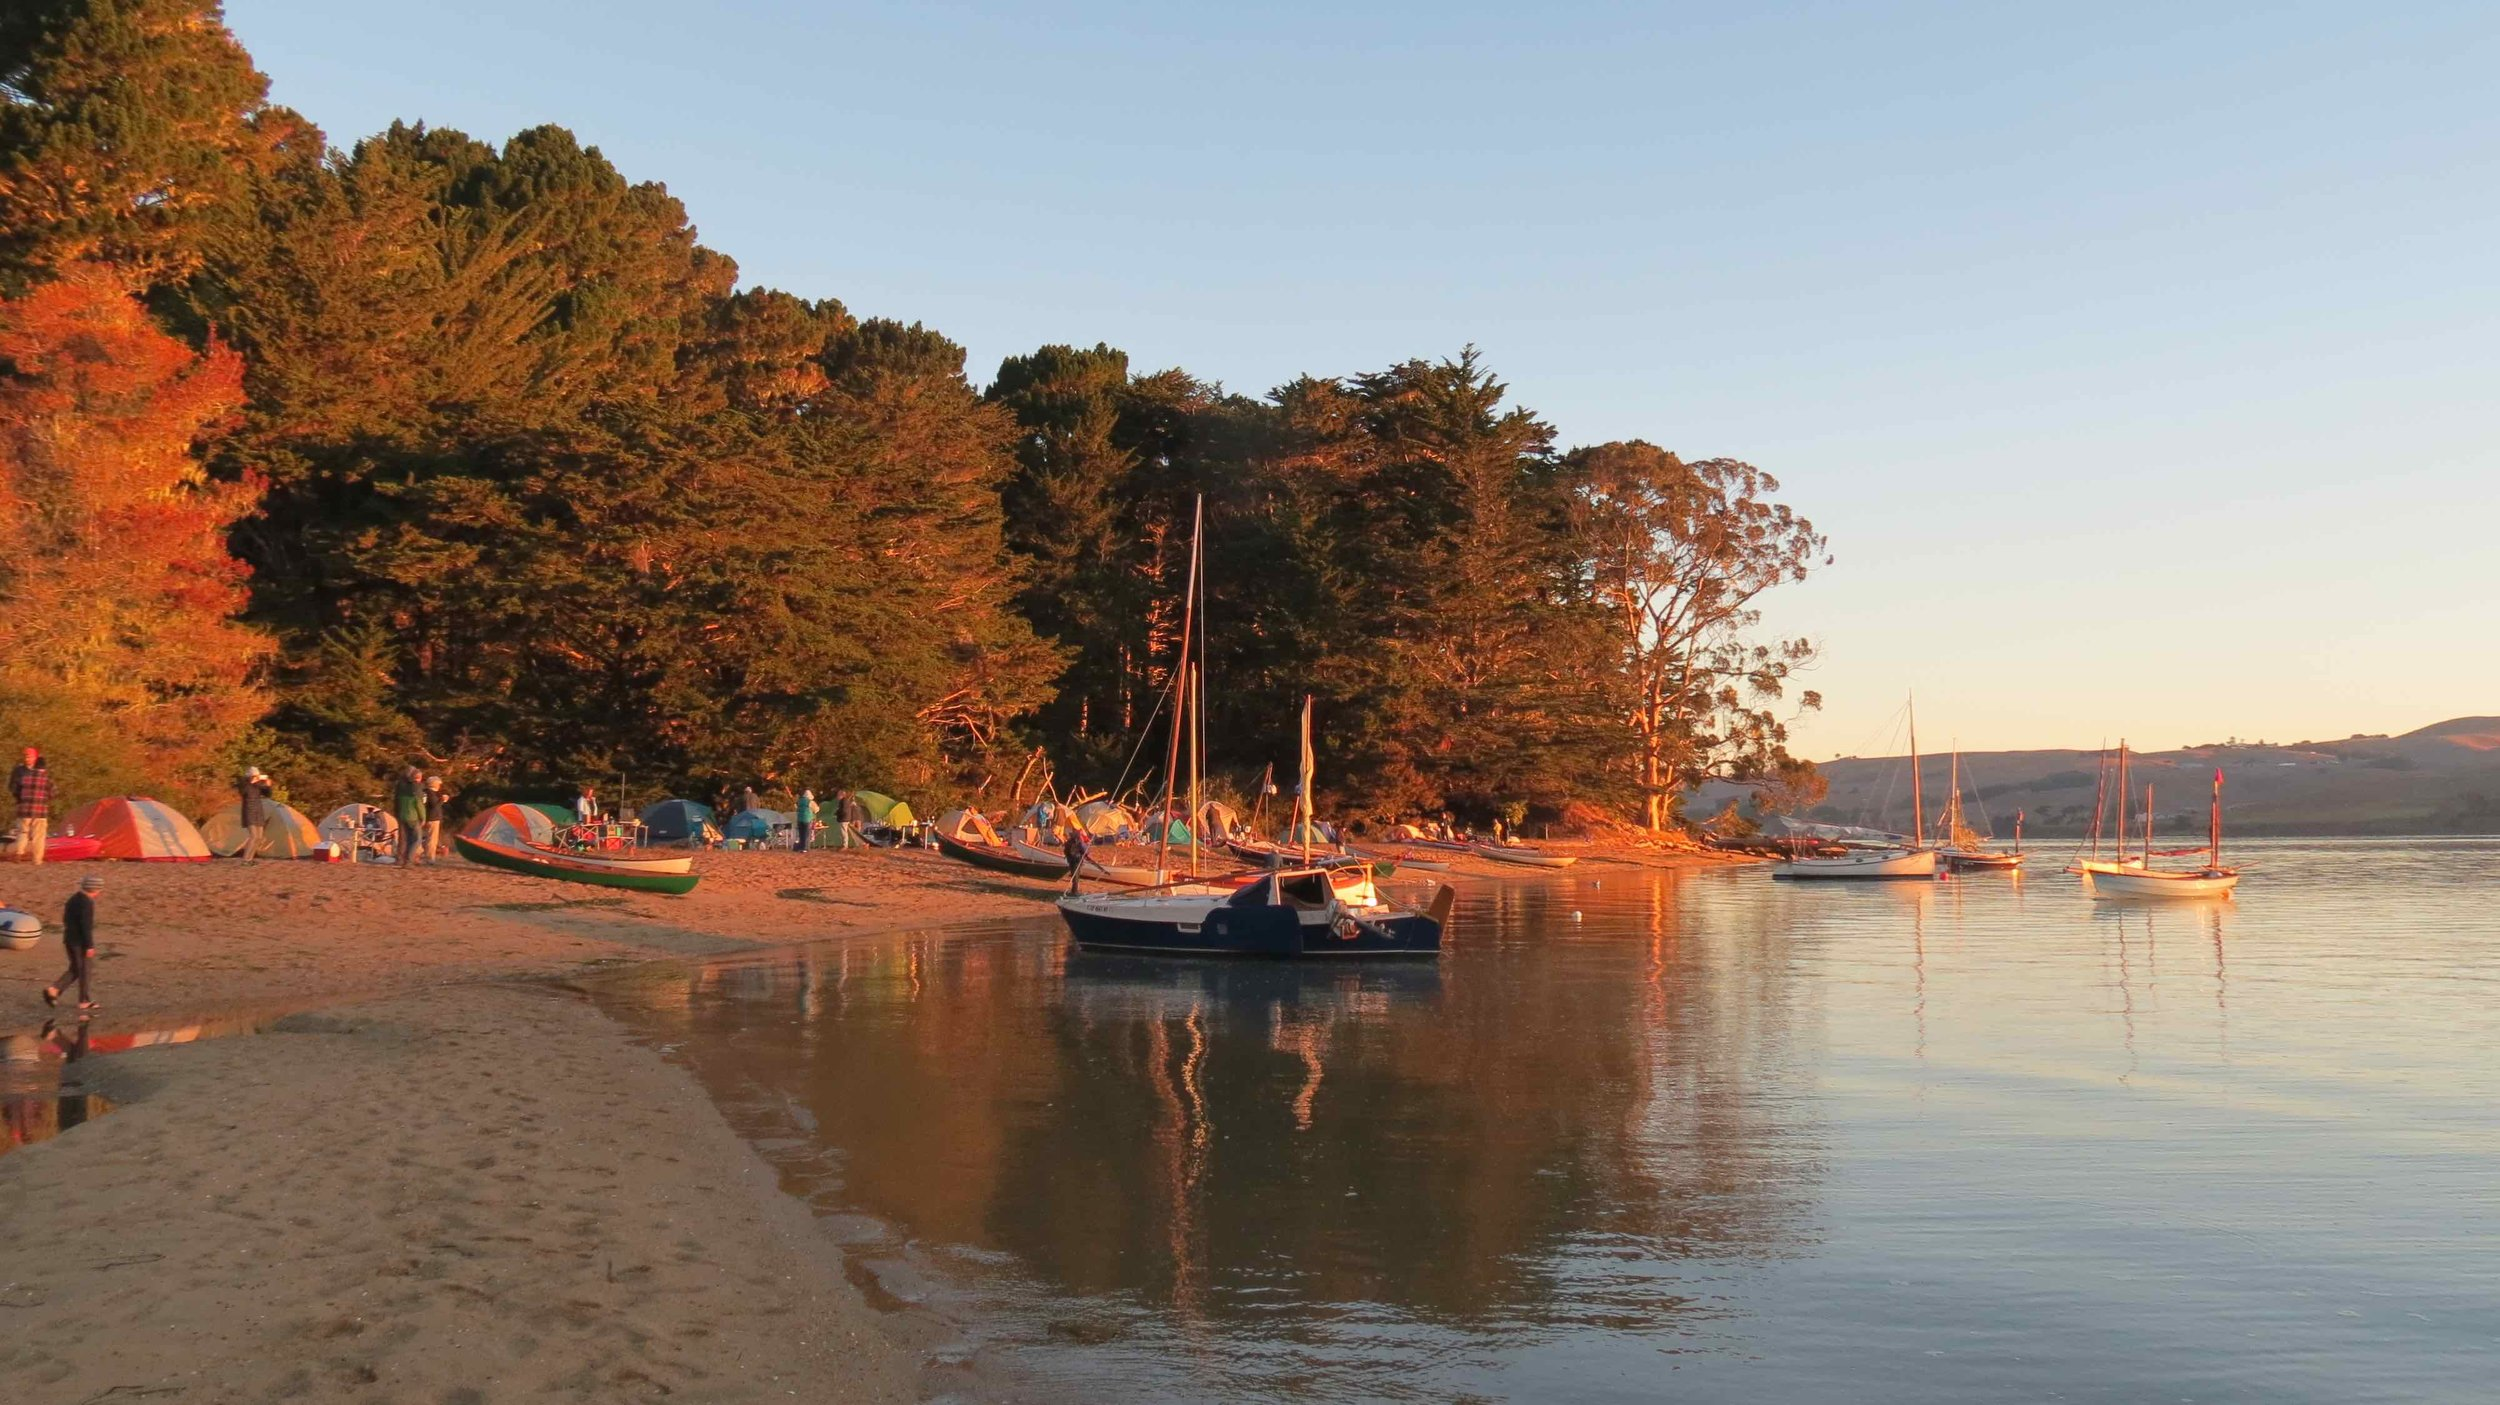 Annual camping trip on Marshal Beach in Tomales Bay.